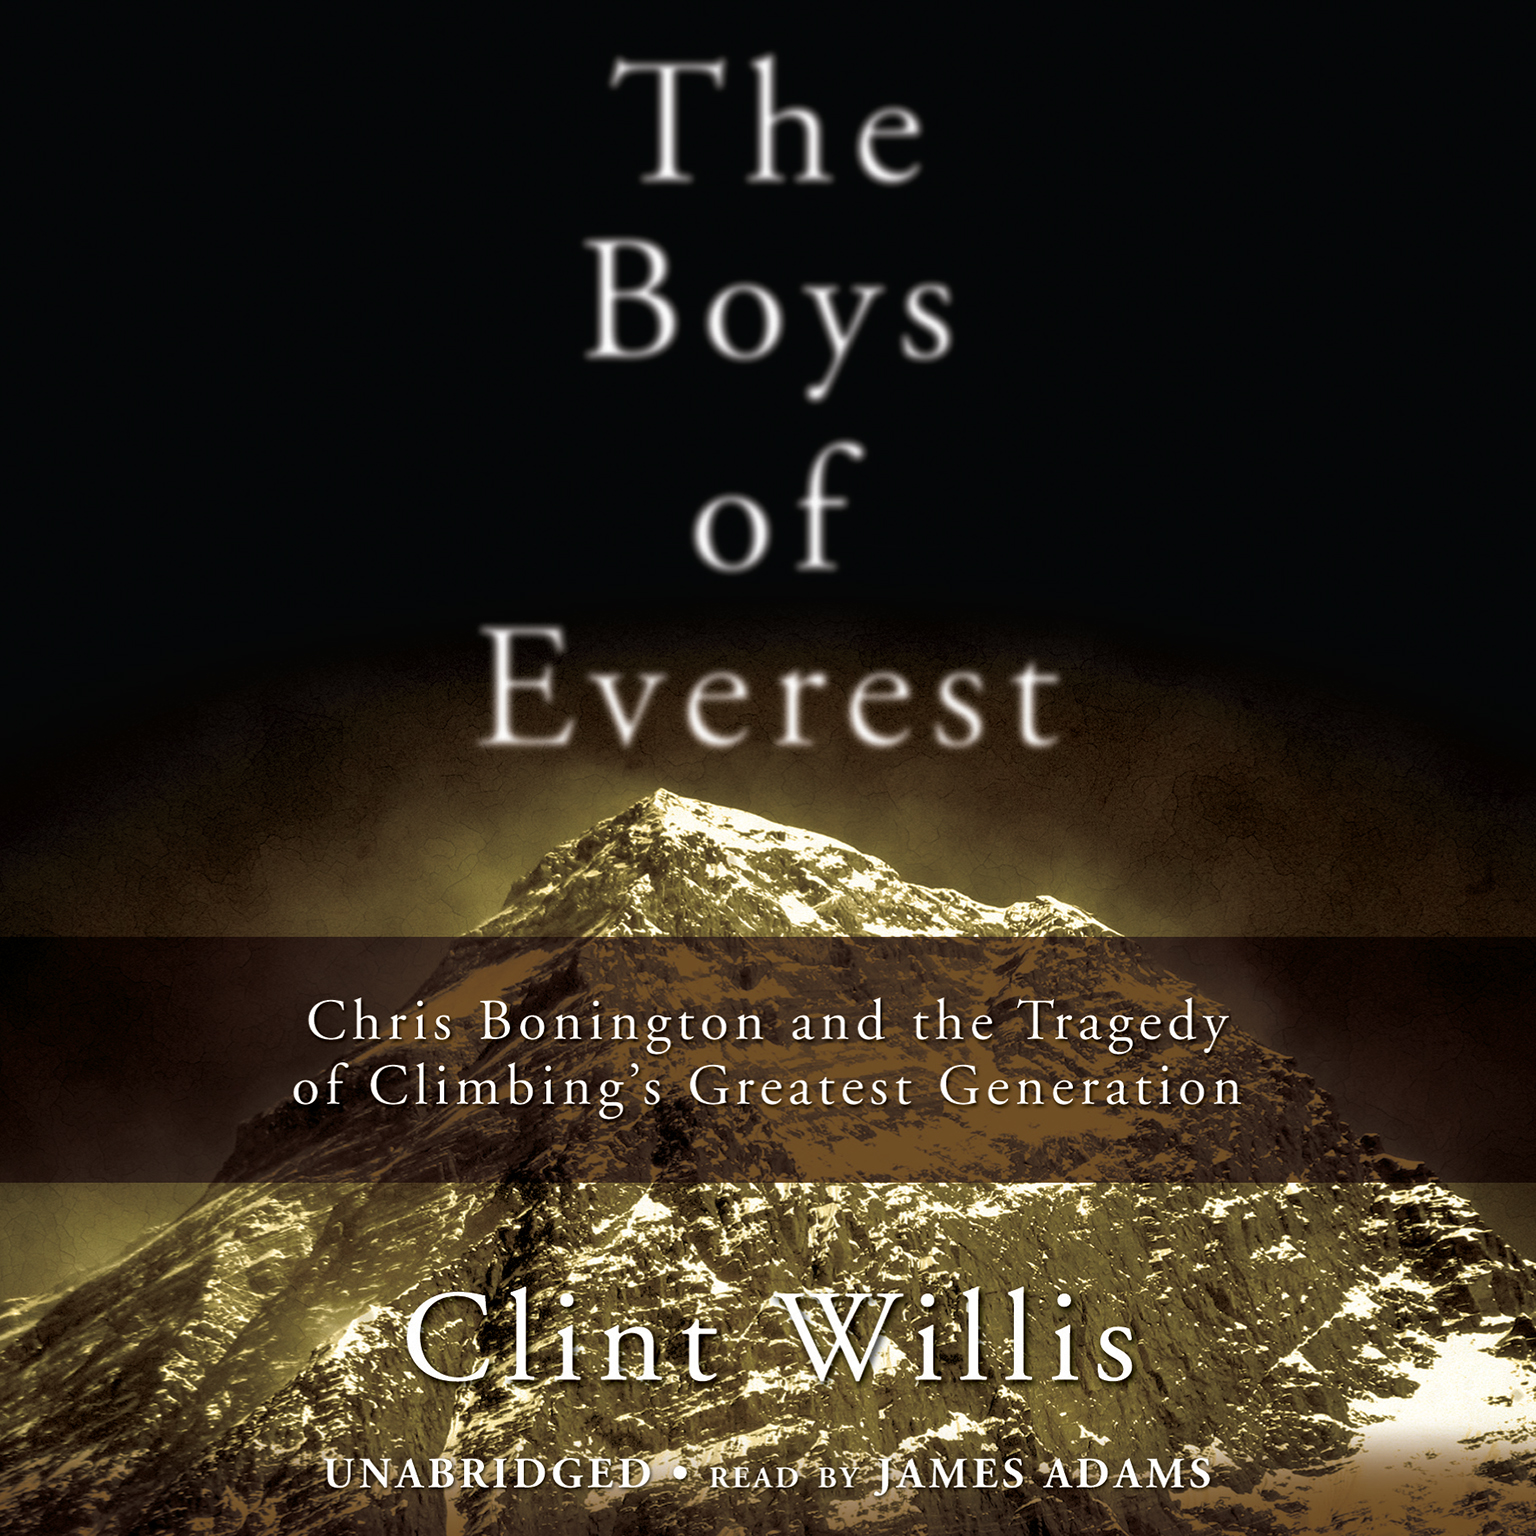 Printable The Boys of Everest: Chris Bonington and the Tragedy of Climbing's Greatest Generation Audiobook Cover Art